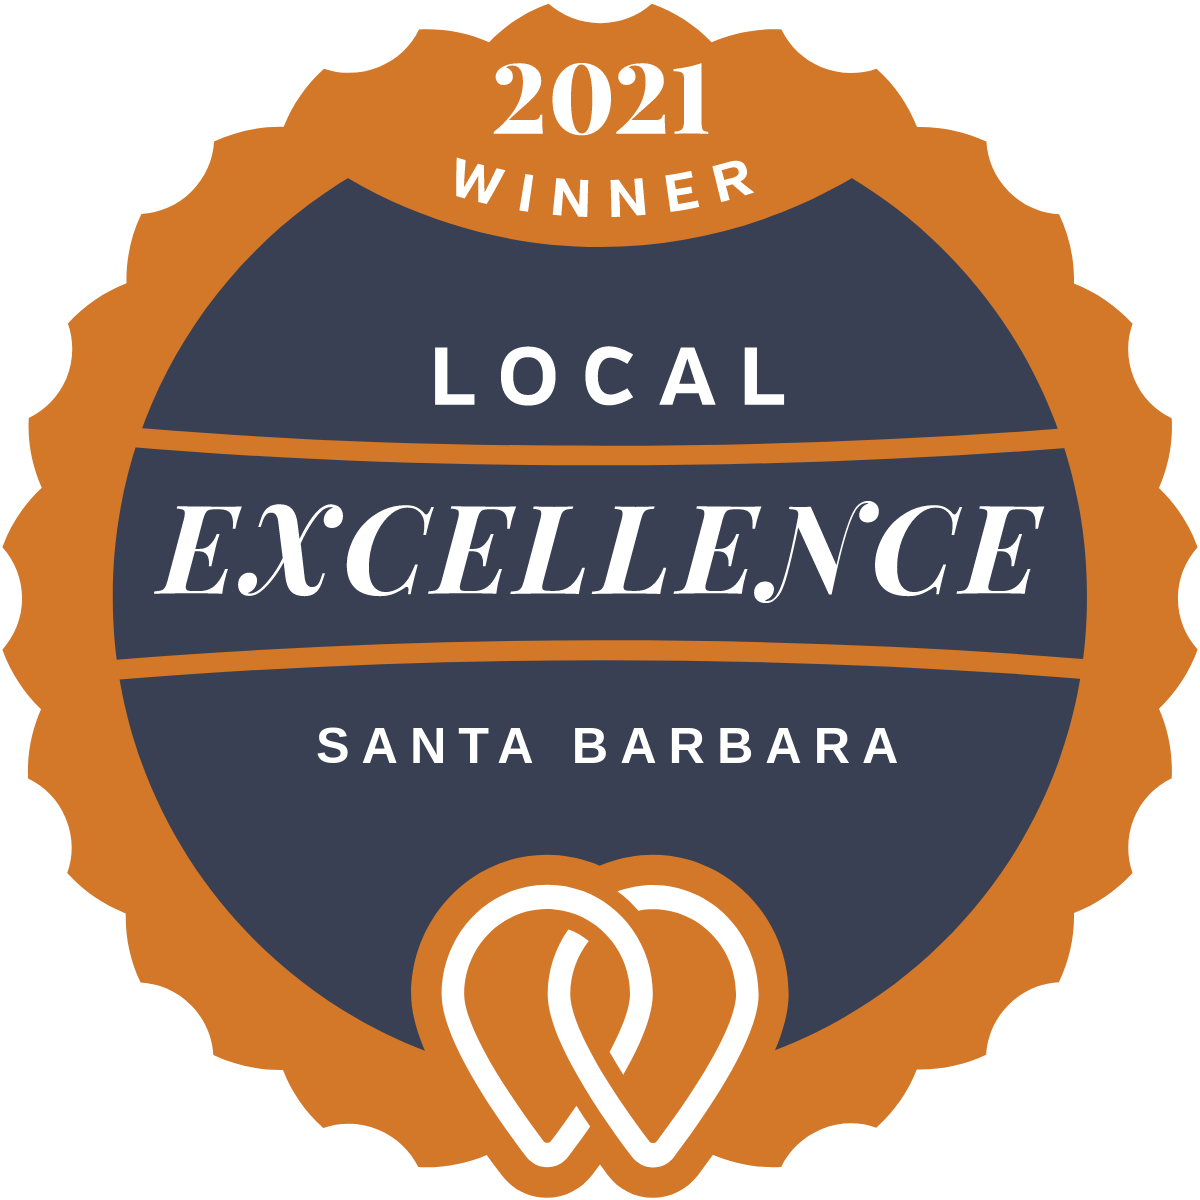 2021 Local Excellence Winner in Santa Barbara, CA